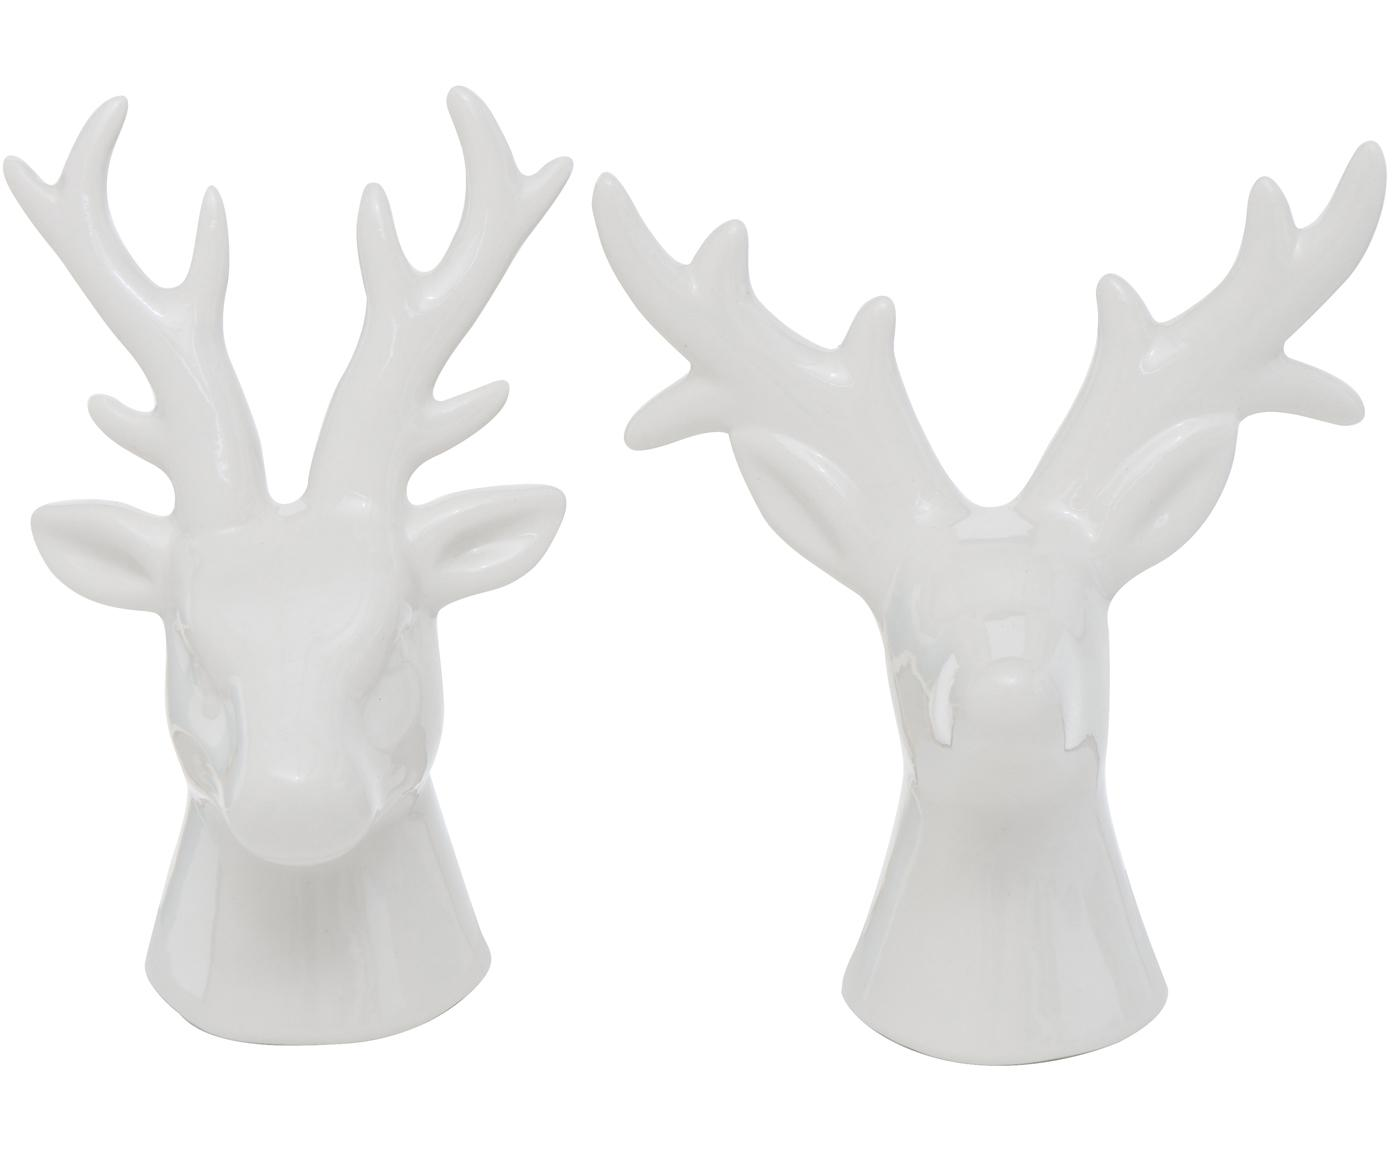 Set de figuras decorativas Thore, 2 pzas., Porcelana, Blanco, An 11 x Al 12 cm